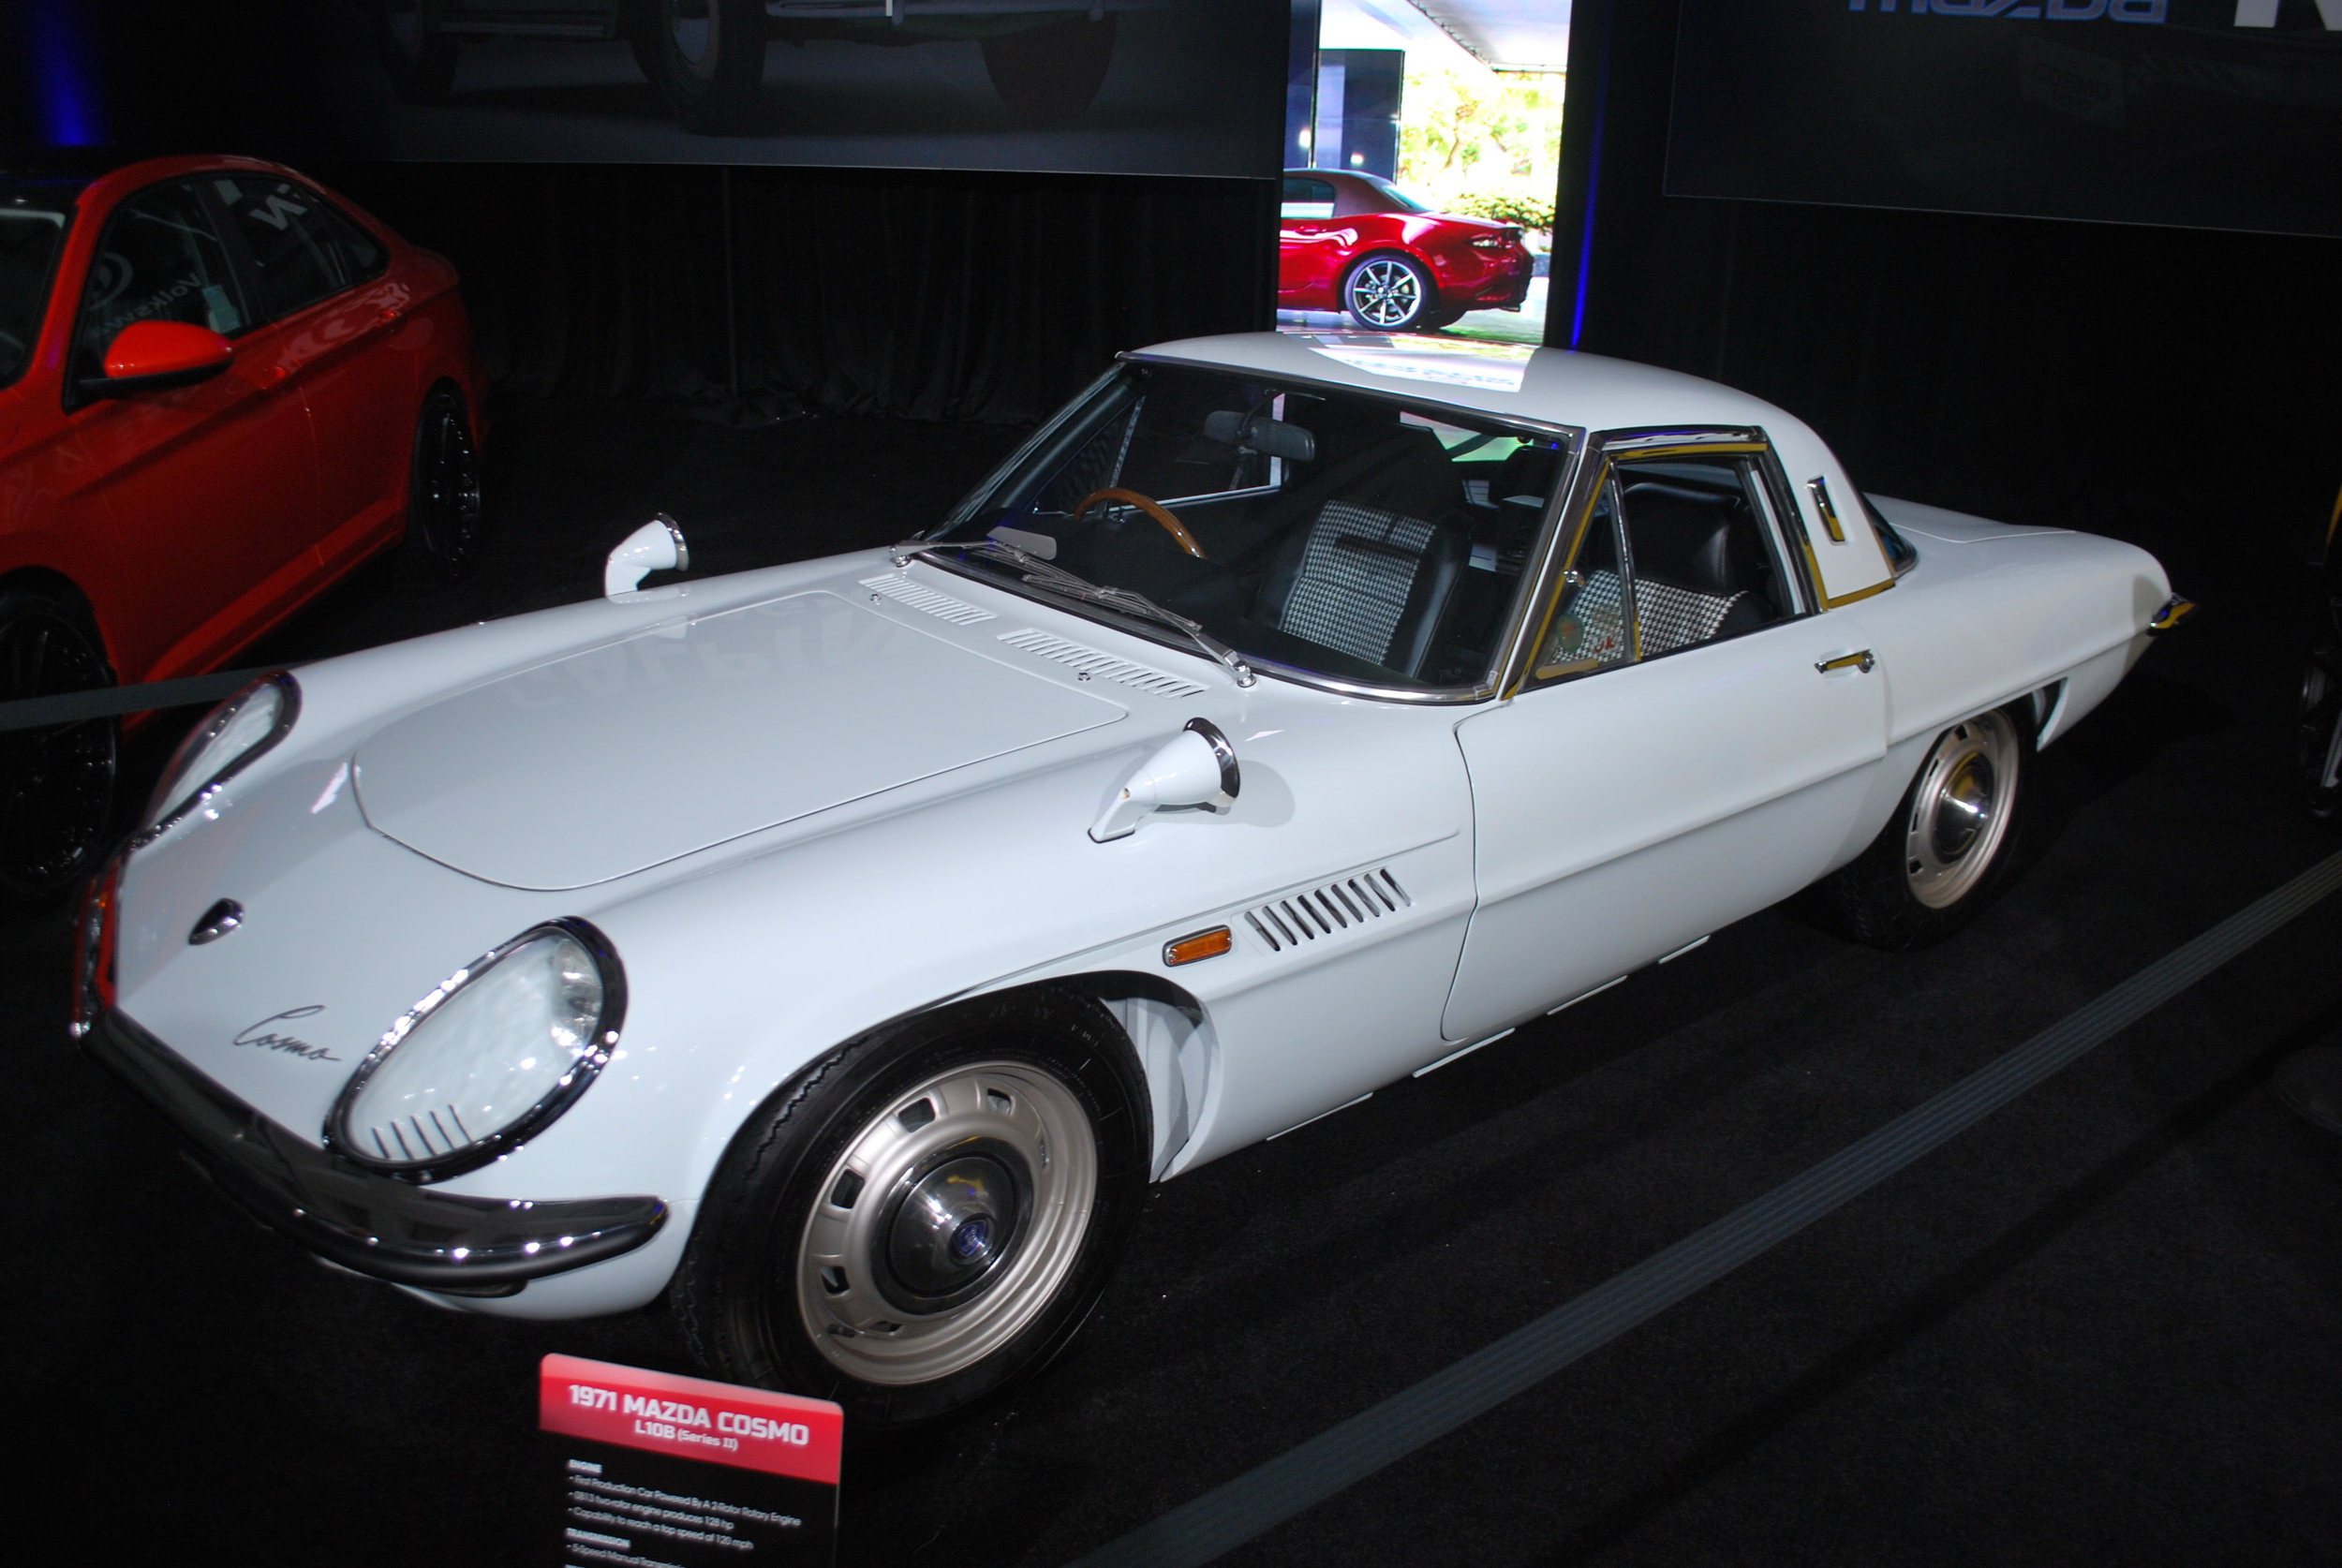 1071 Mazda Cosmo at the 2018 Los Angeles International Auto Show